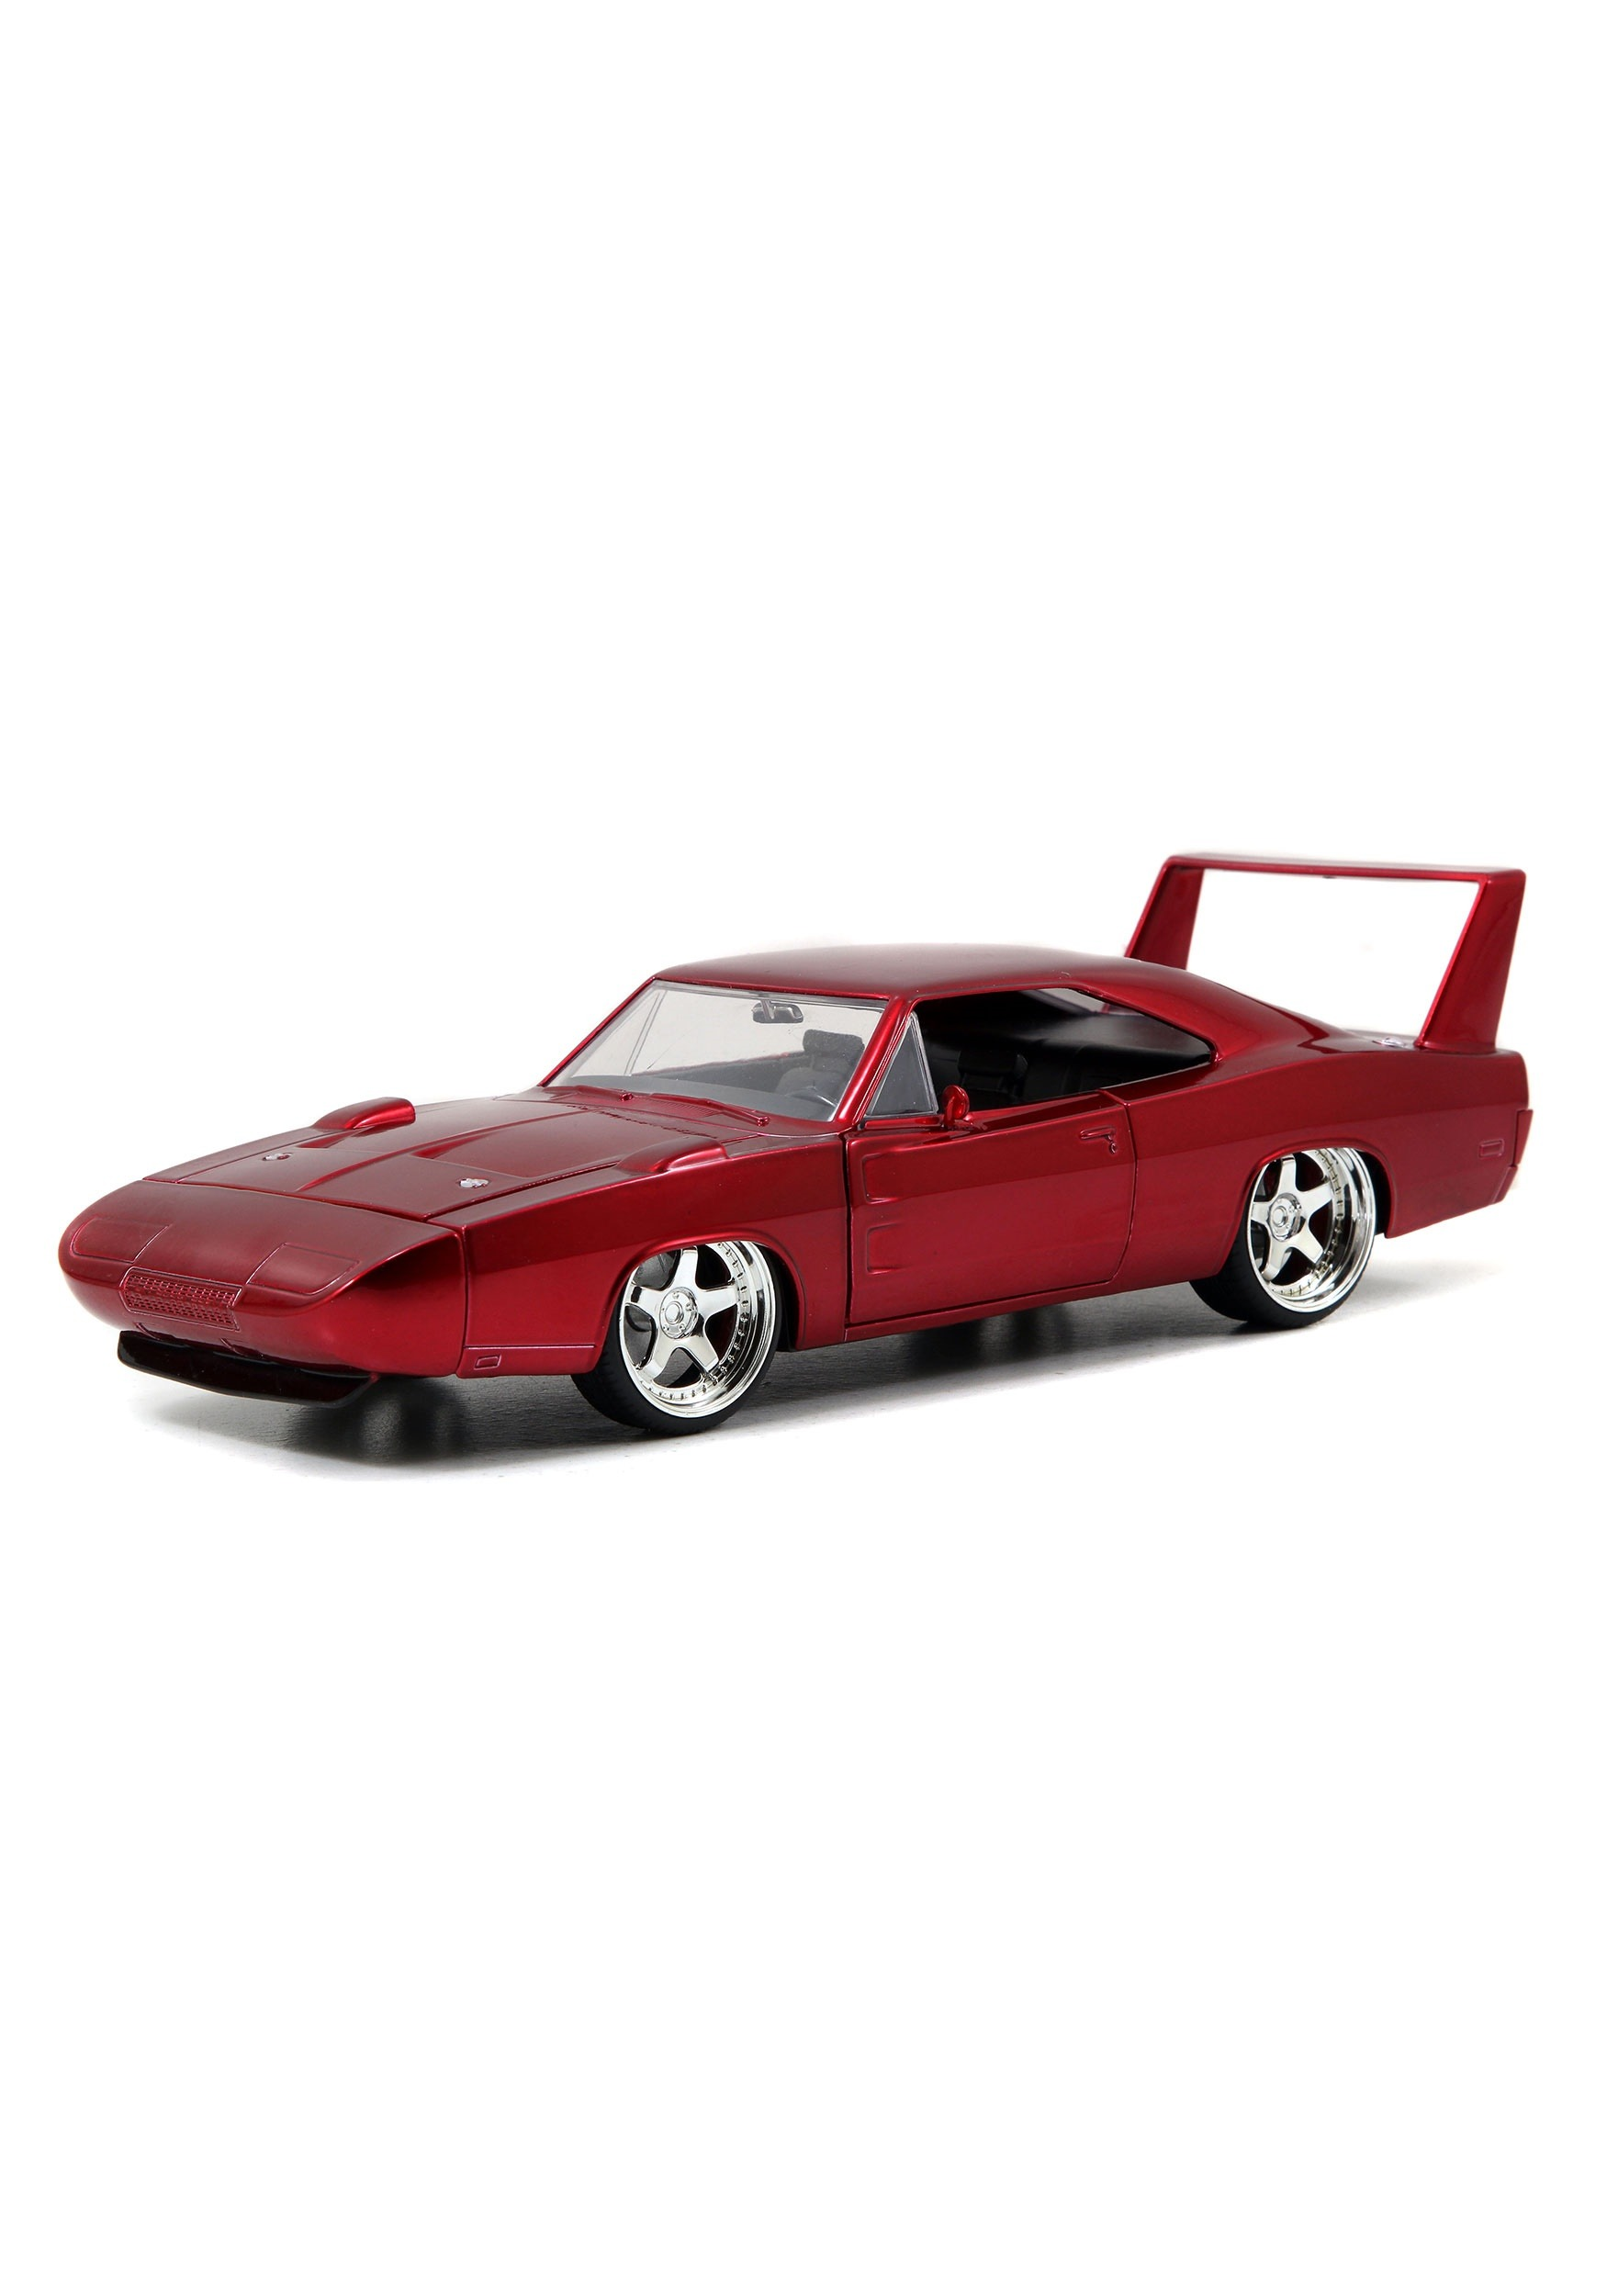 Fast The Furious 69 Dodge Charger Daytona